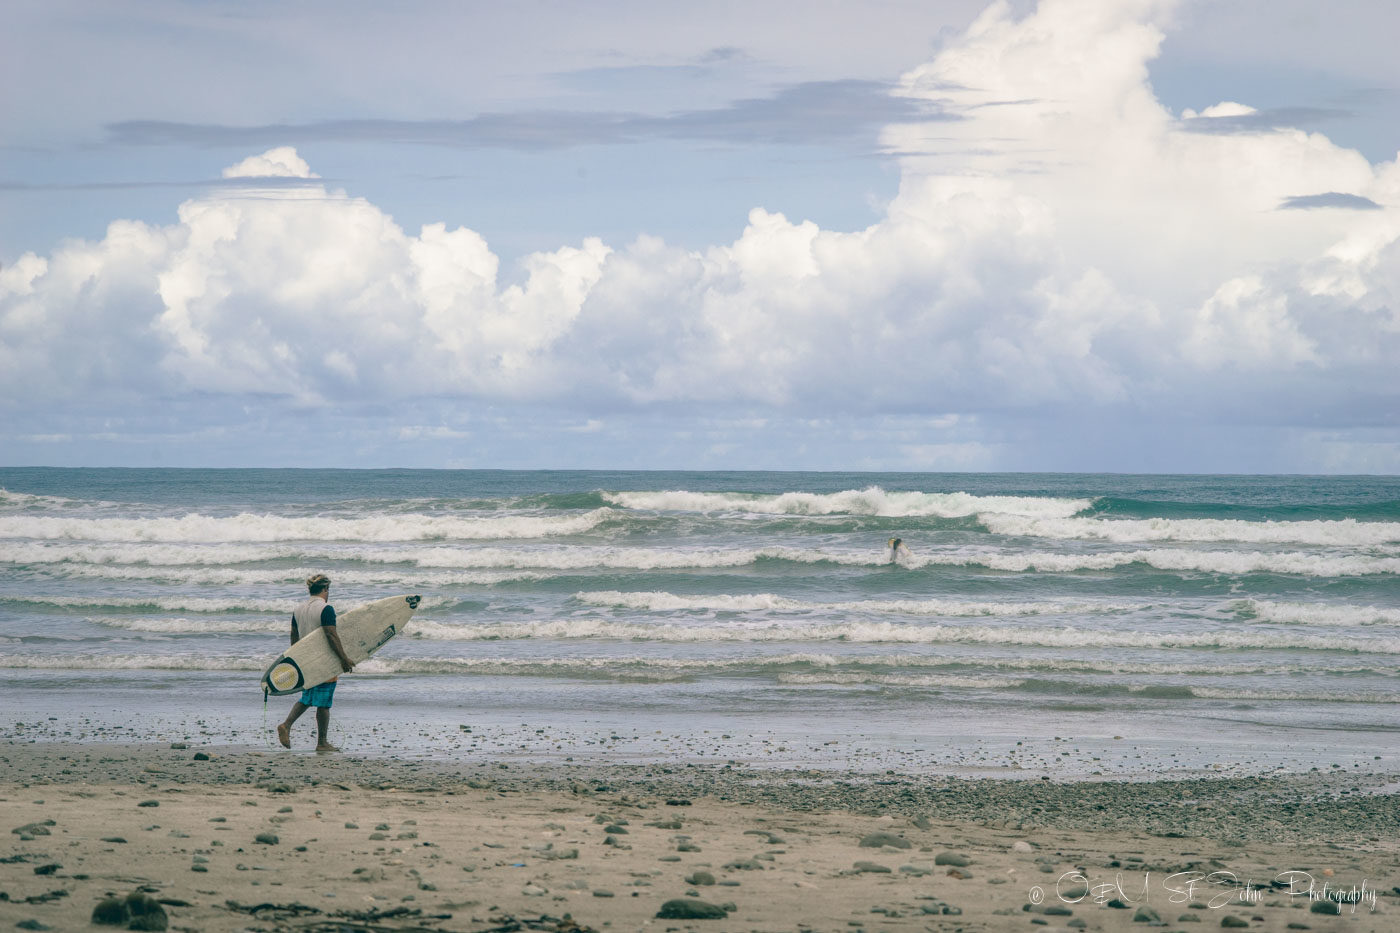 Costa Rica itinerary: Surfer ready to hit the waves at Playa Carmen, Santa Teresa